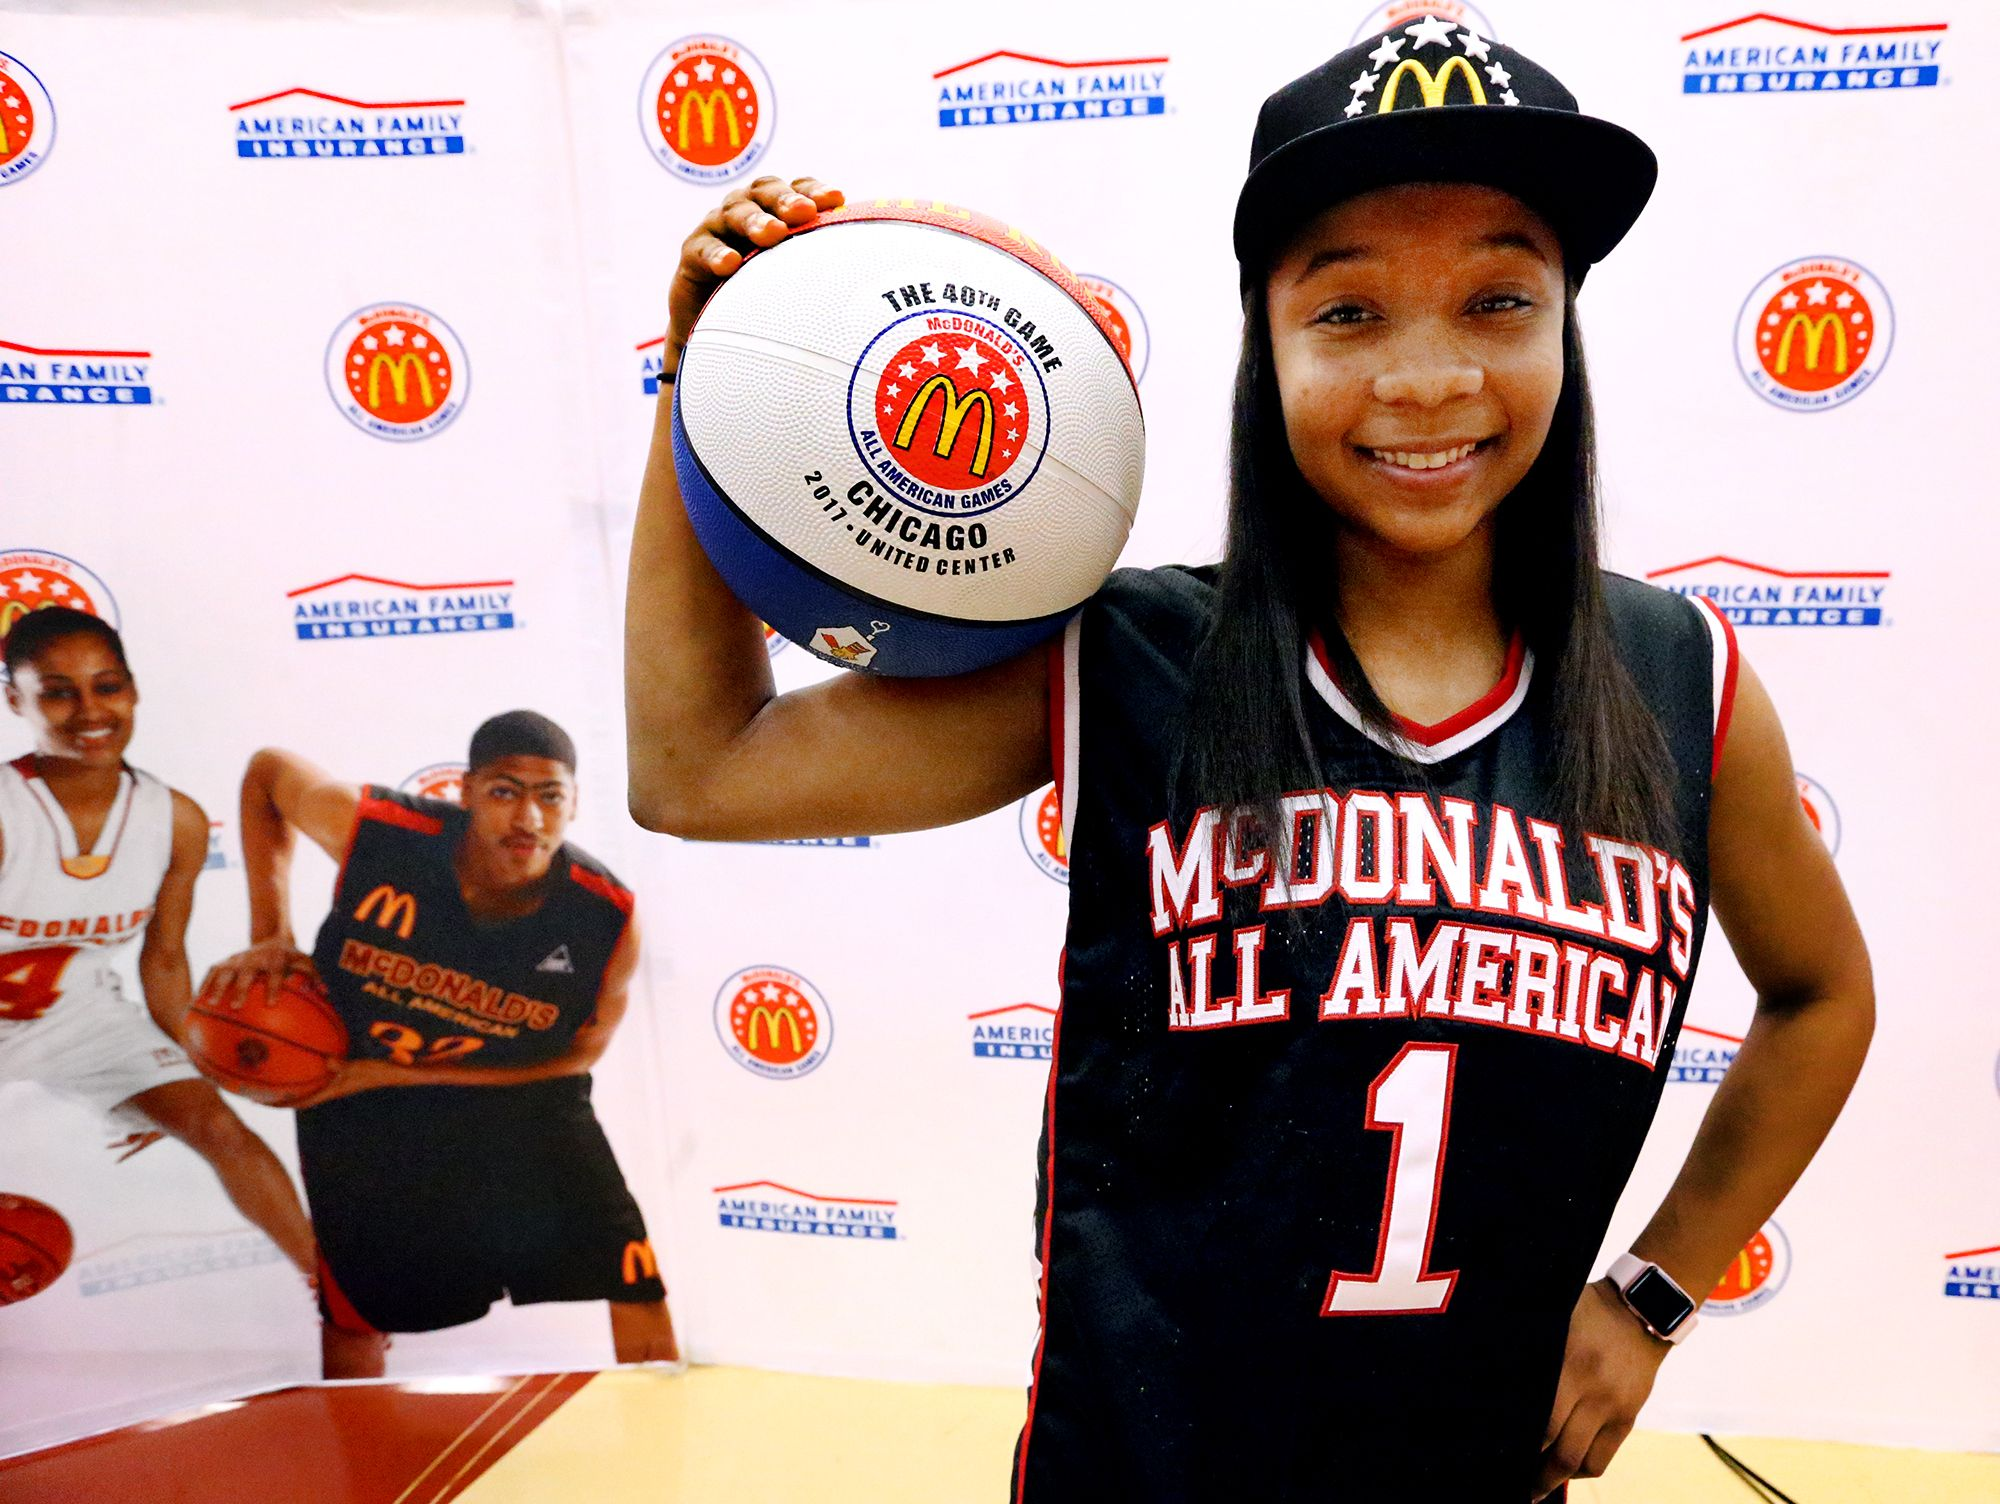 Riverdale's Anastasia Hayes was presented with her McDonald's All American jersey and hat on Tuesday, Feb. 21, 2017, at the school after being named as part of the 40th All American team.